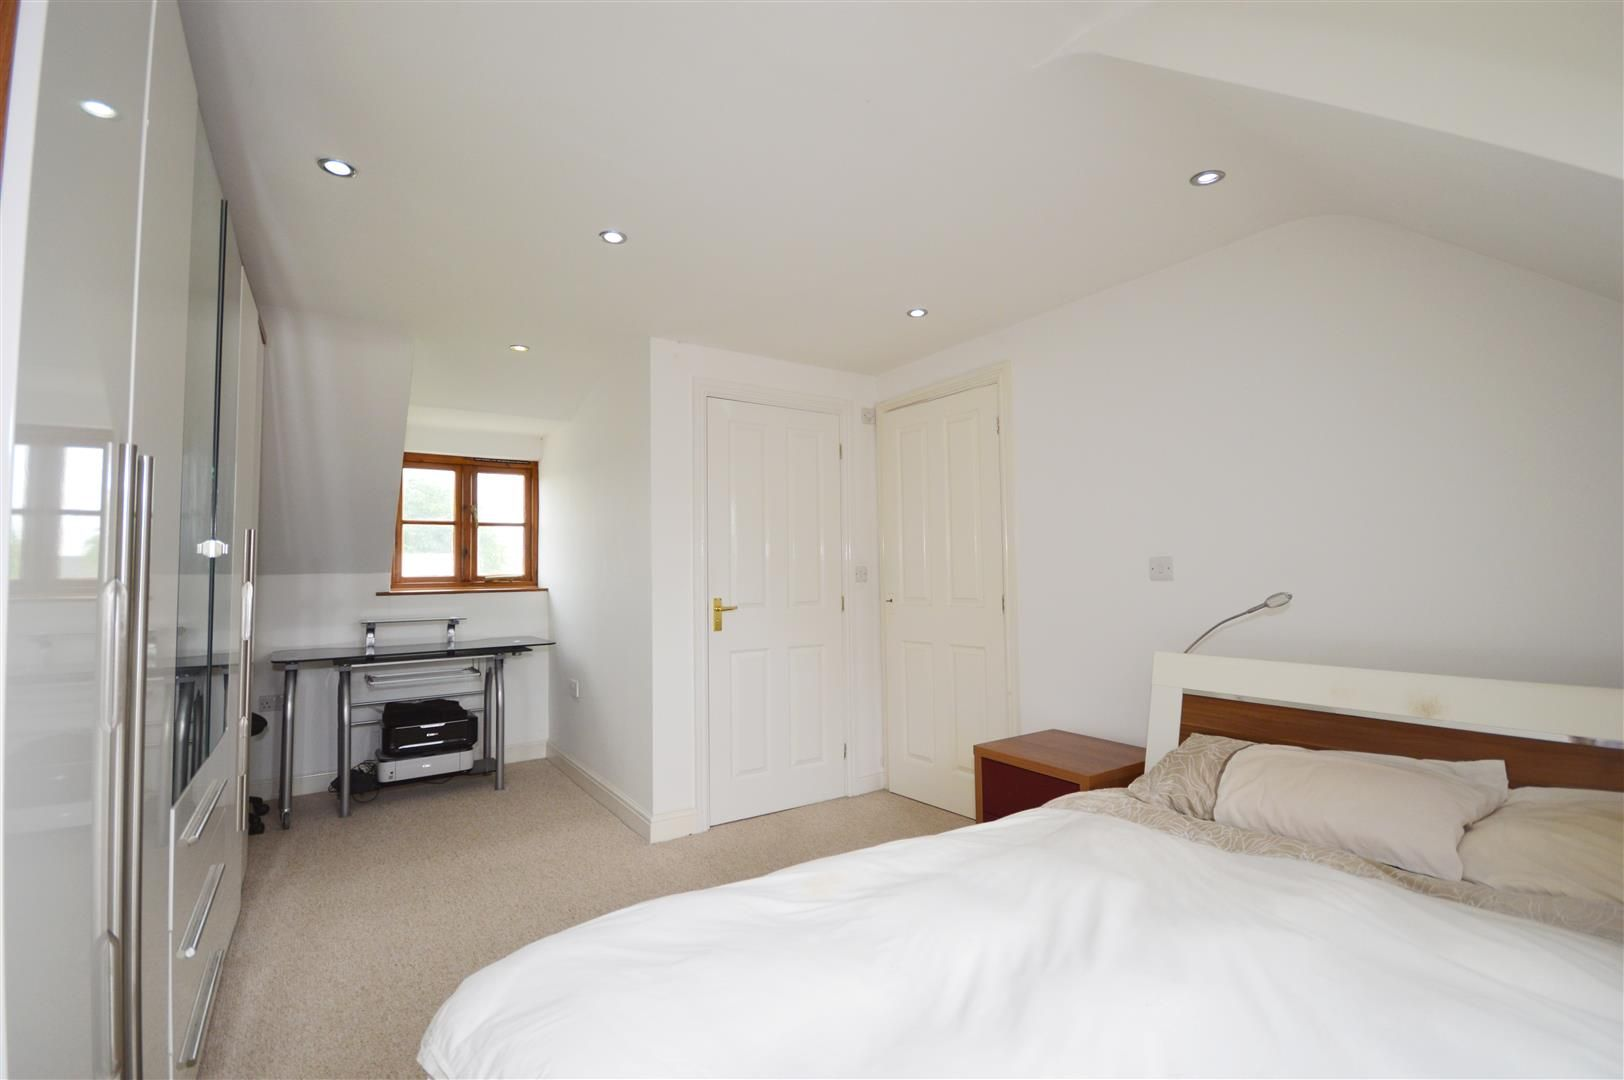 3 bed semi-detached for sale in Staunton-On-Wye 6